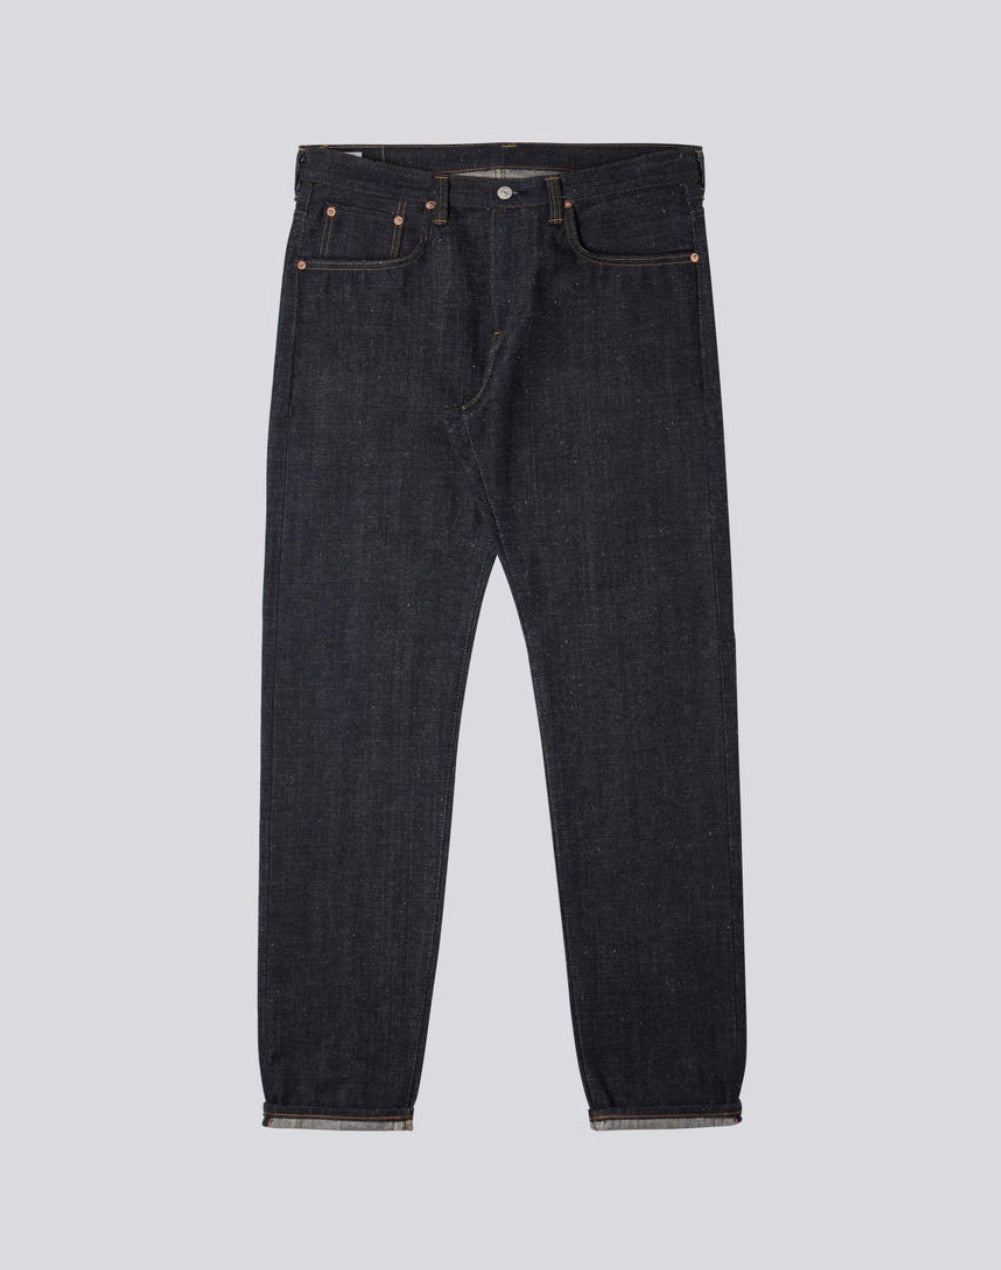 Regular Tapered Nihon Menpu Dark Indigo Blue Raw Jeans